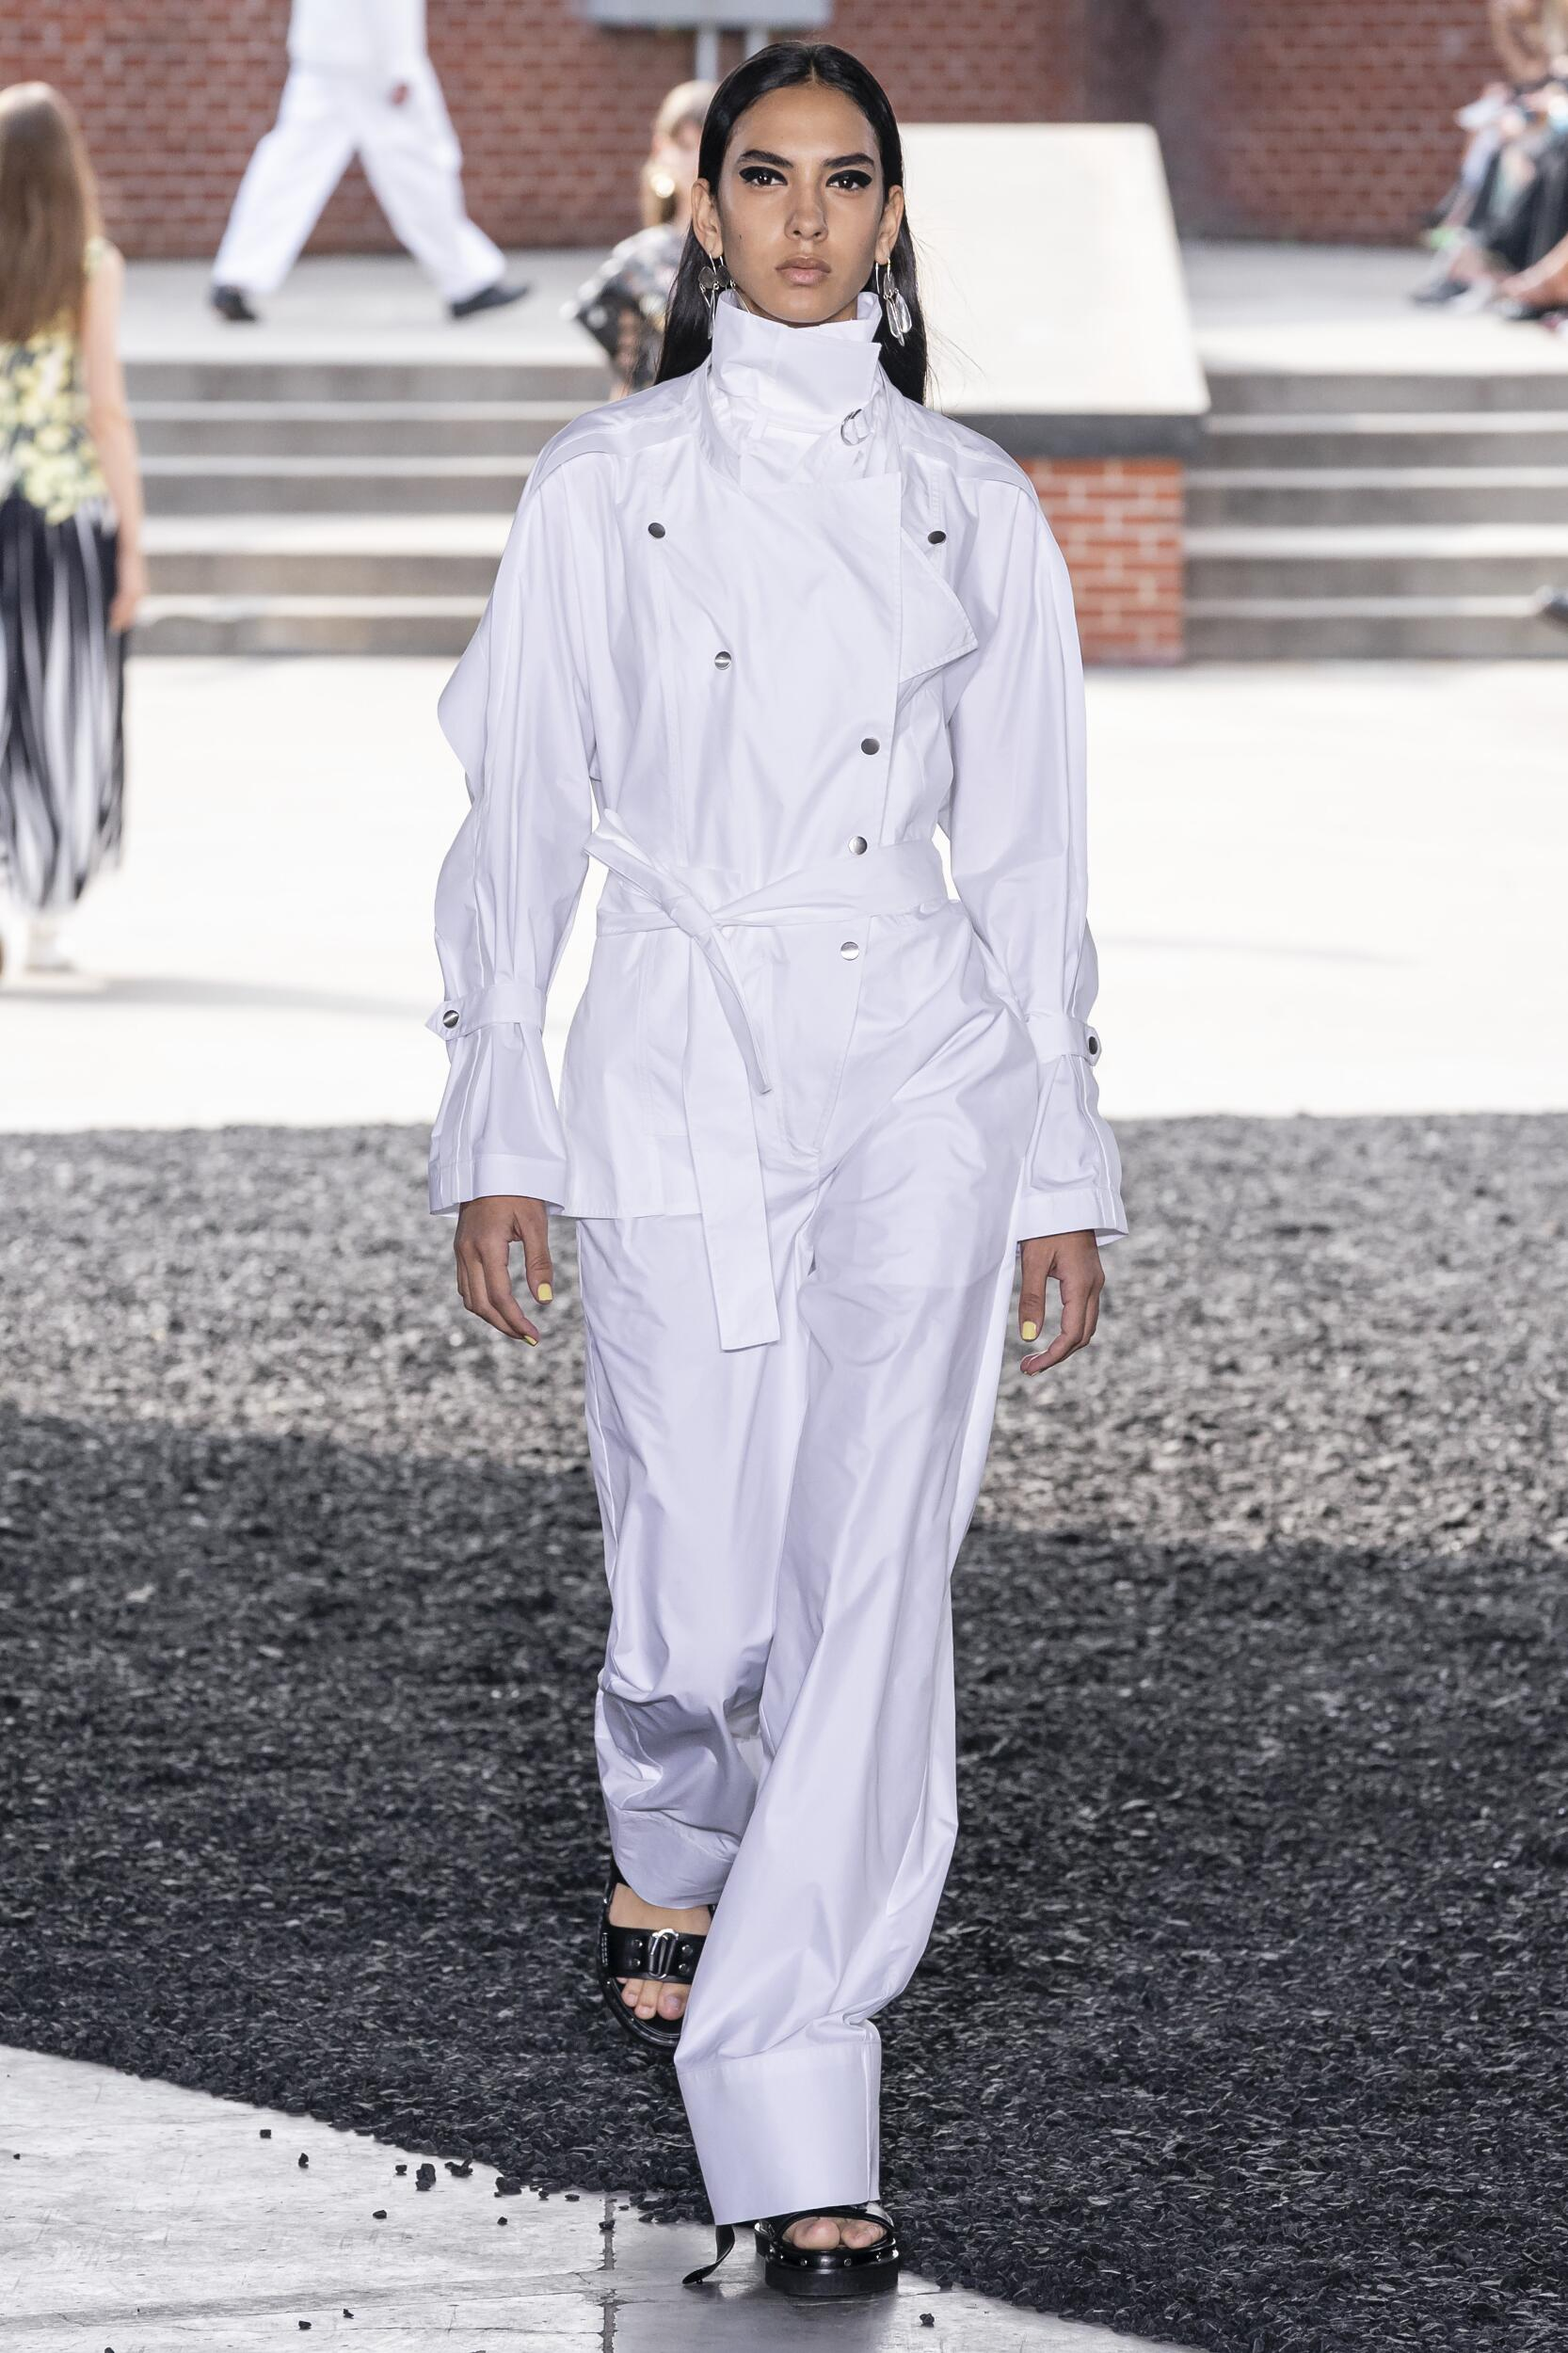 3.1 Phillip Lim SS 2020 Womenswear